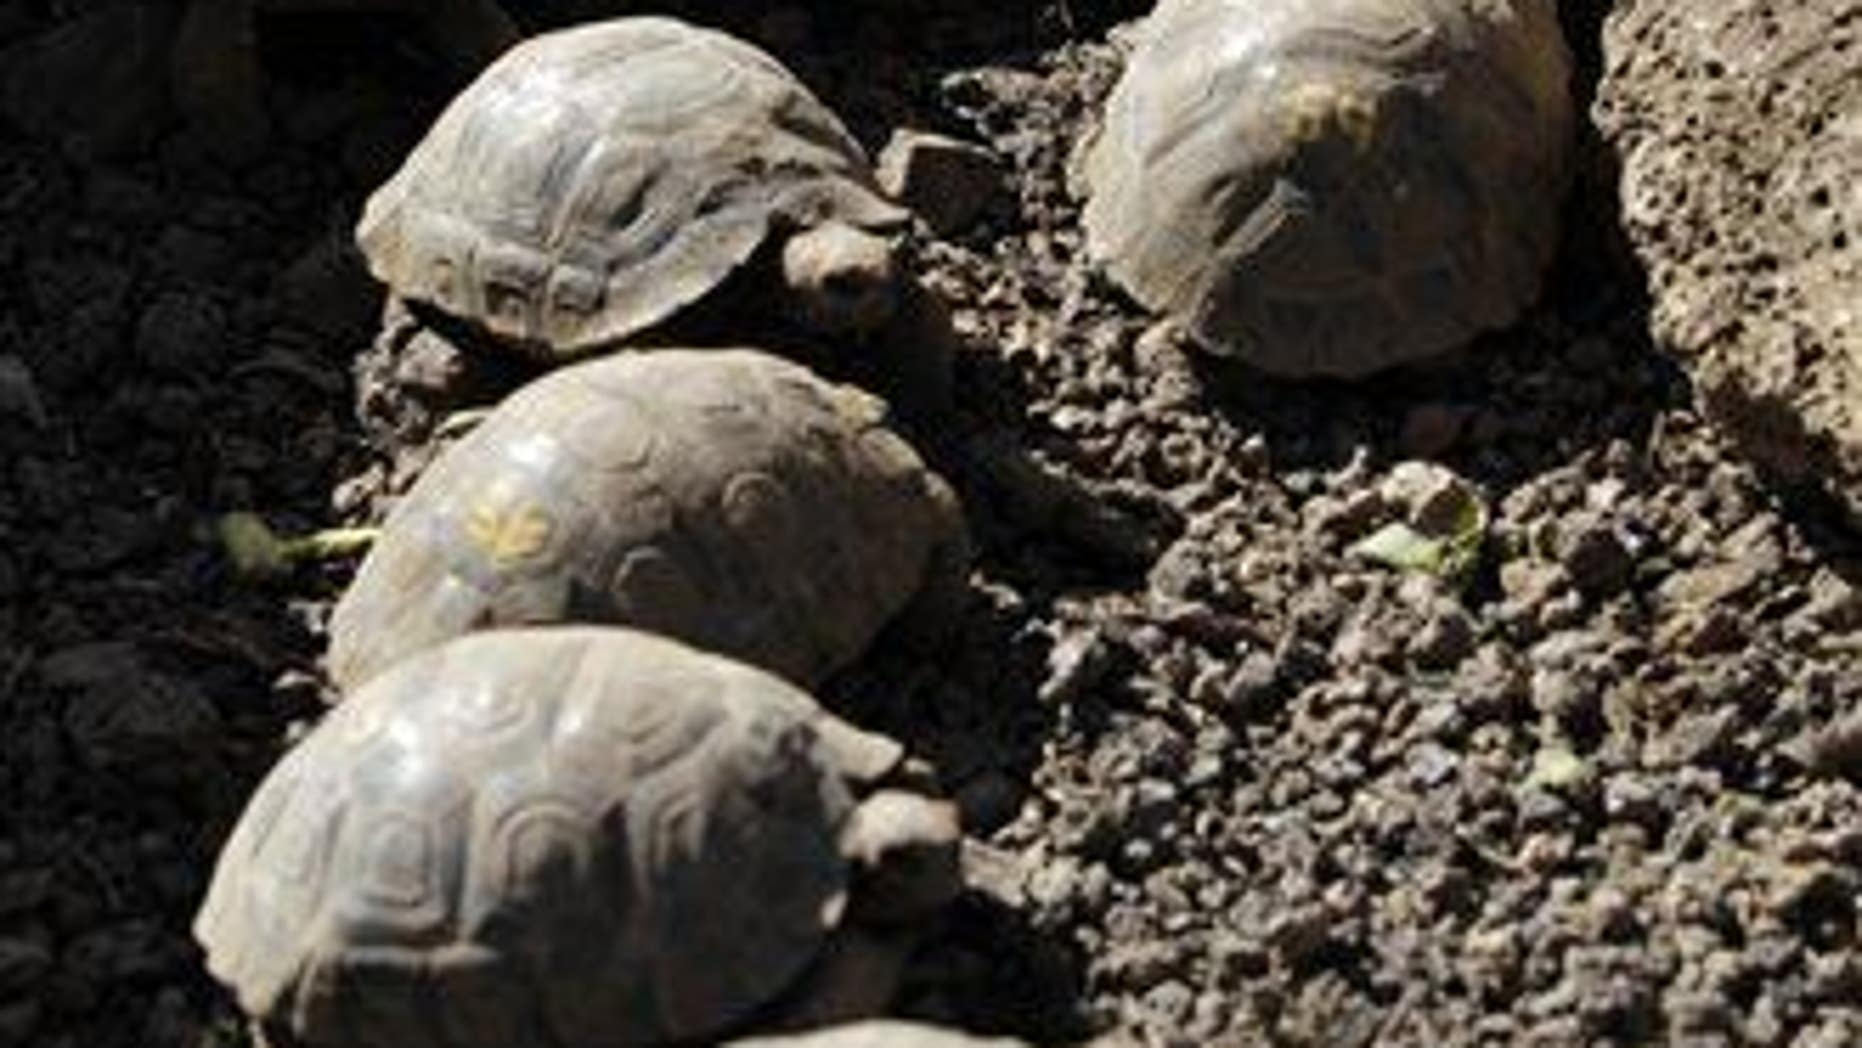 In this 2012 photo, tortoises are seen at the Fausto Llerena Breeding Center of the Galapagos National Park and the Charles Darwin Research Station on another Galapagos island.